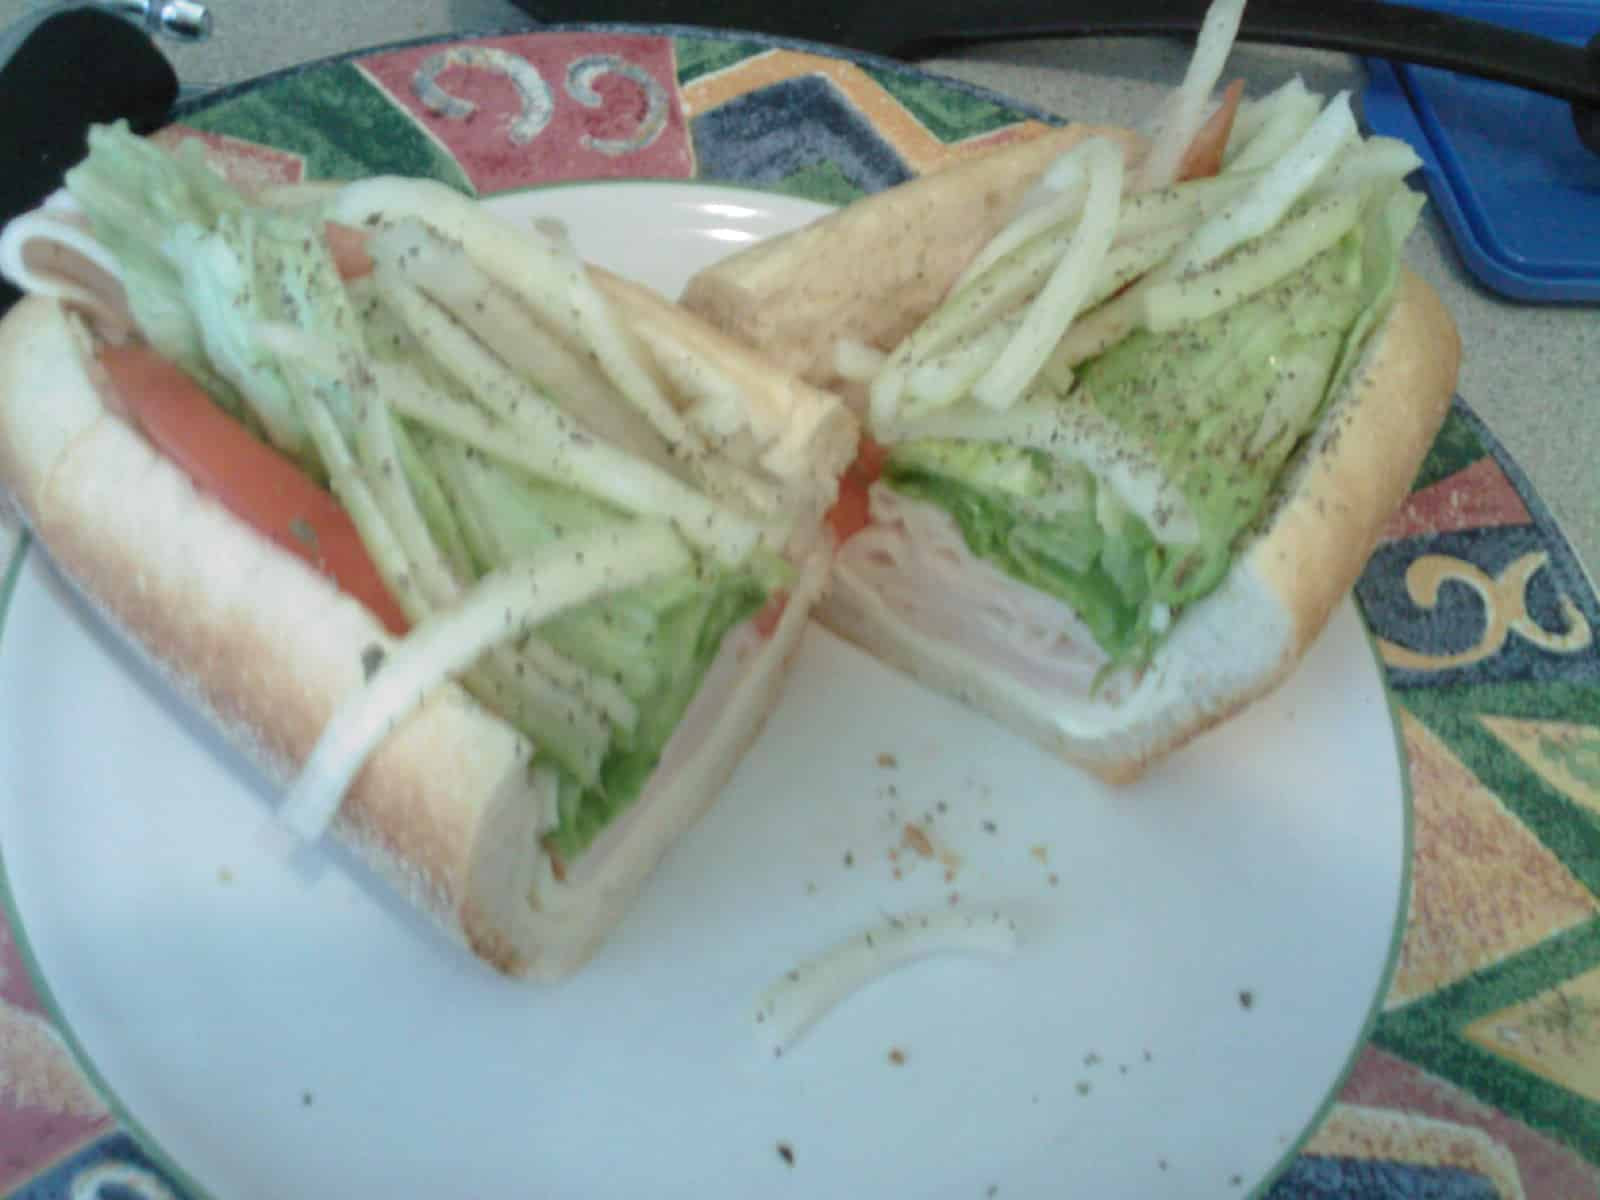 The Homemade Turkey Hoagie Wawa Can't Compete With 1